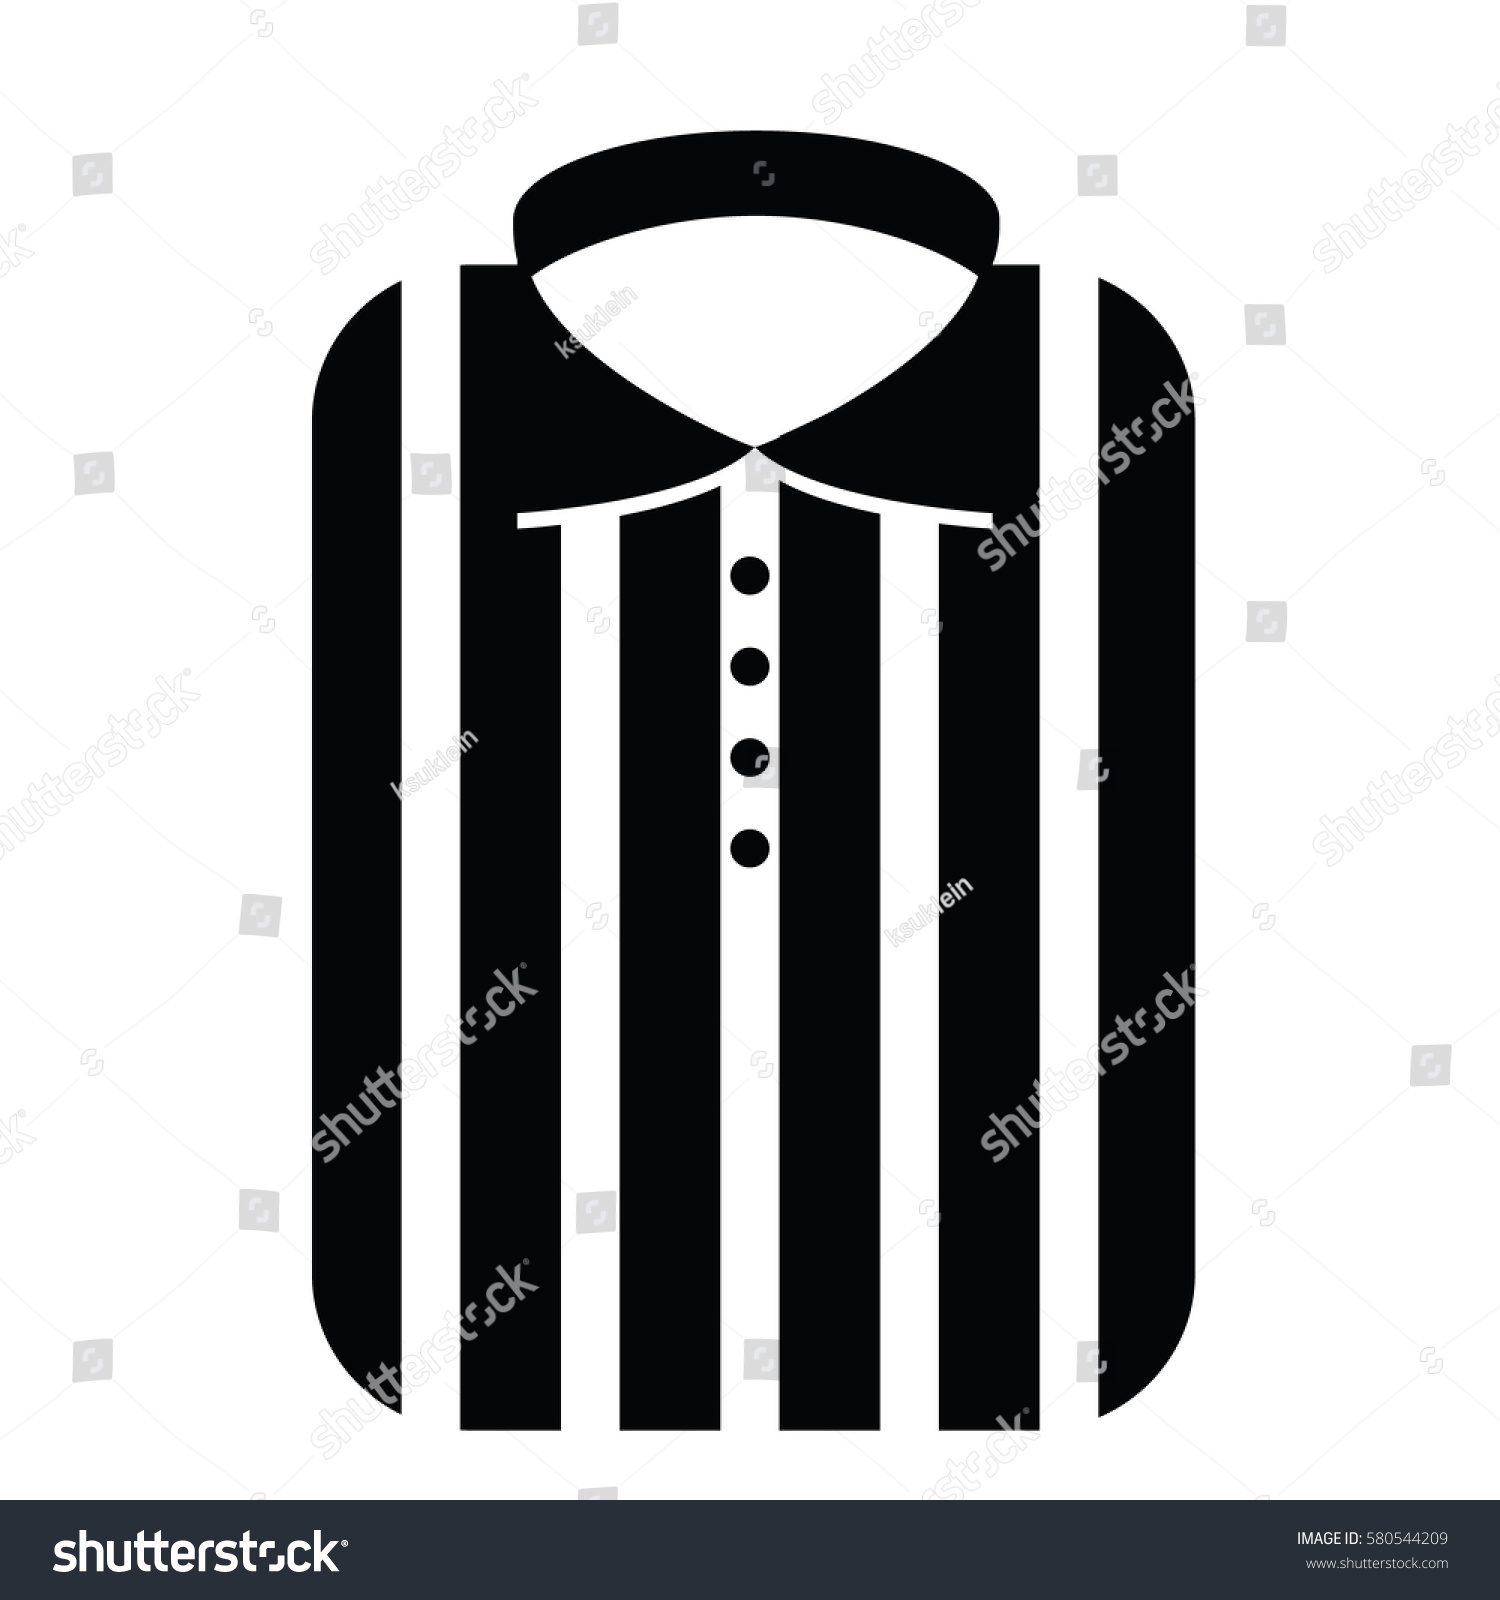 fashionable striped man shirt icon icon printable label black and white illustration of